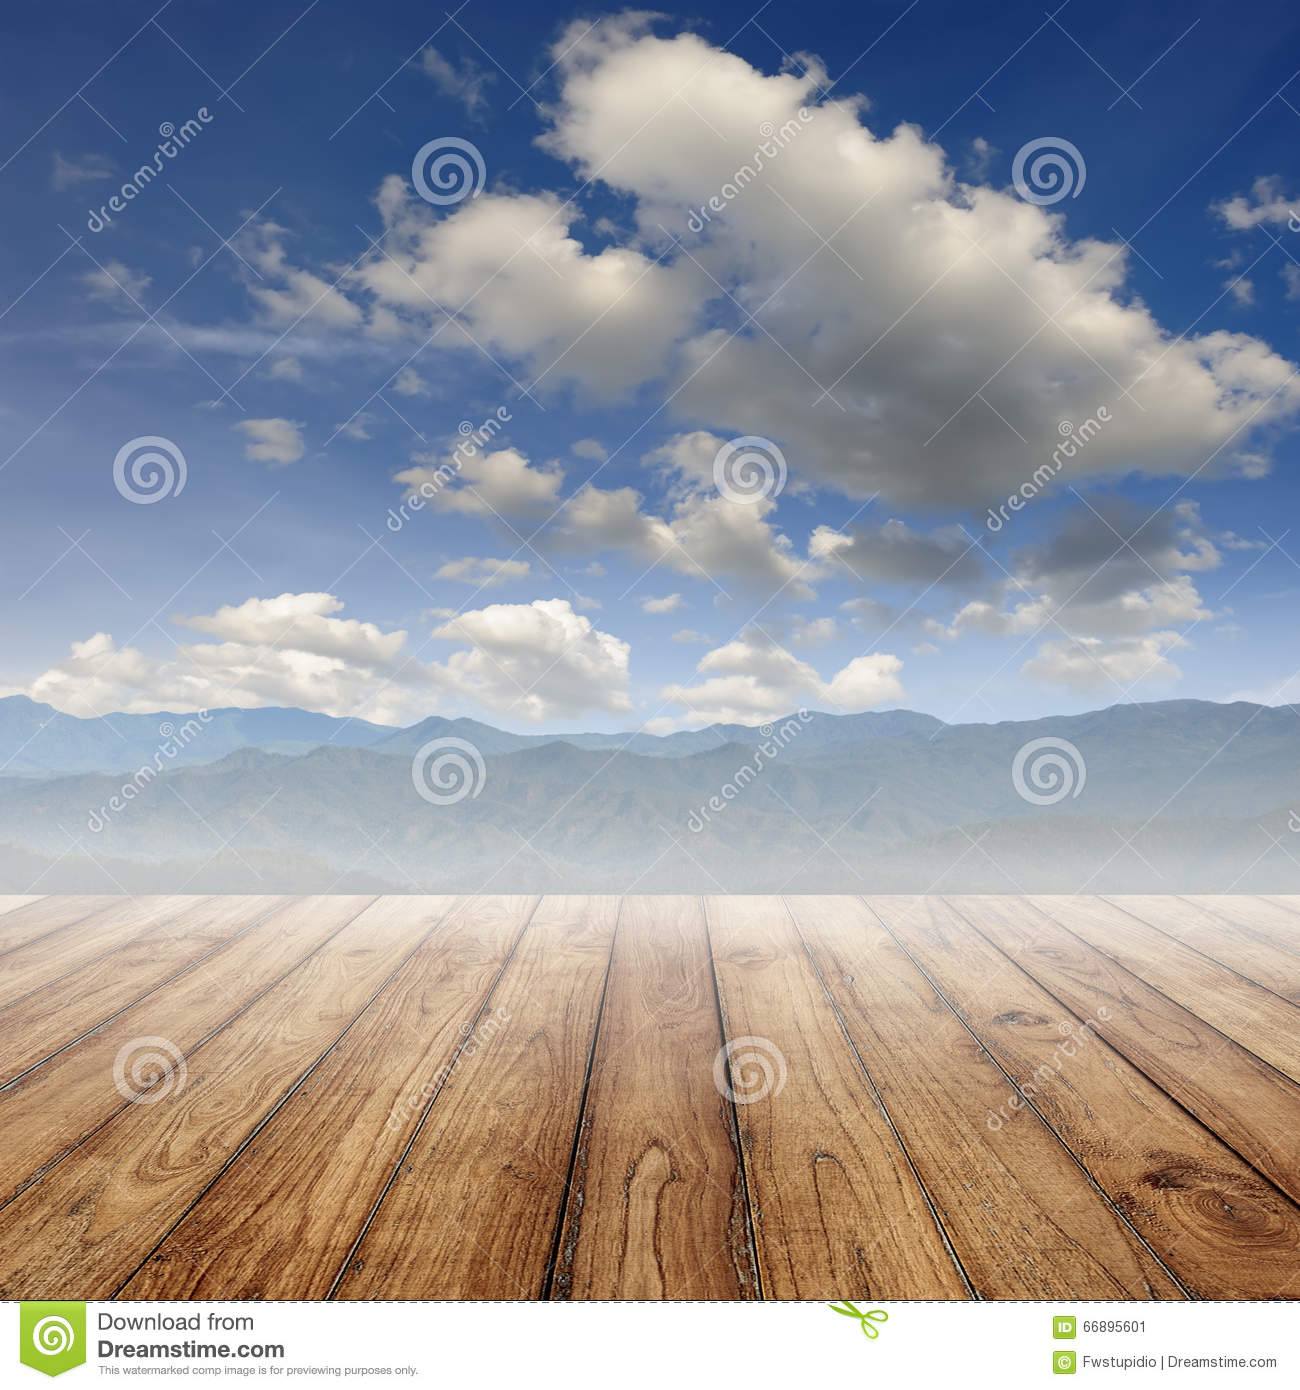 Wood Floor On Beach Sea And Blue Sky For Background Stock: Wood Floor On Beach Sea And Blue Sky For Background